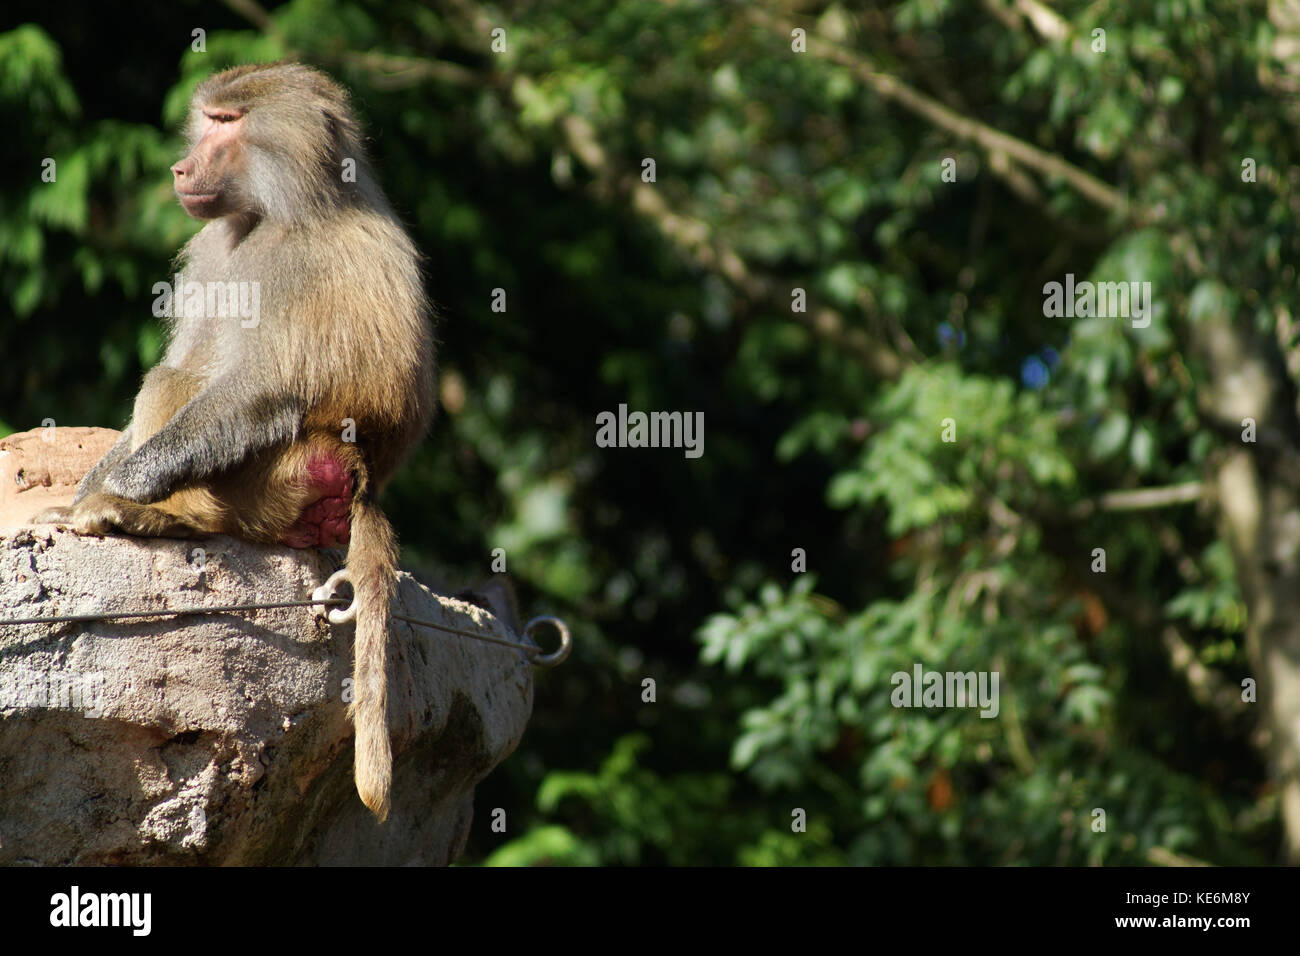 A baboon sits on a rock in Devon, UK - Stock Image